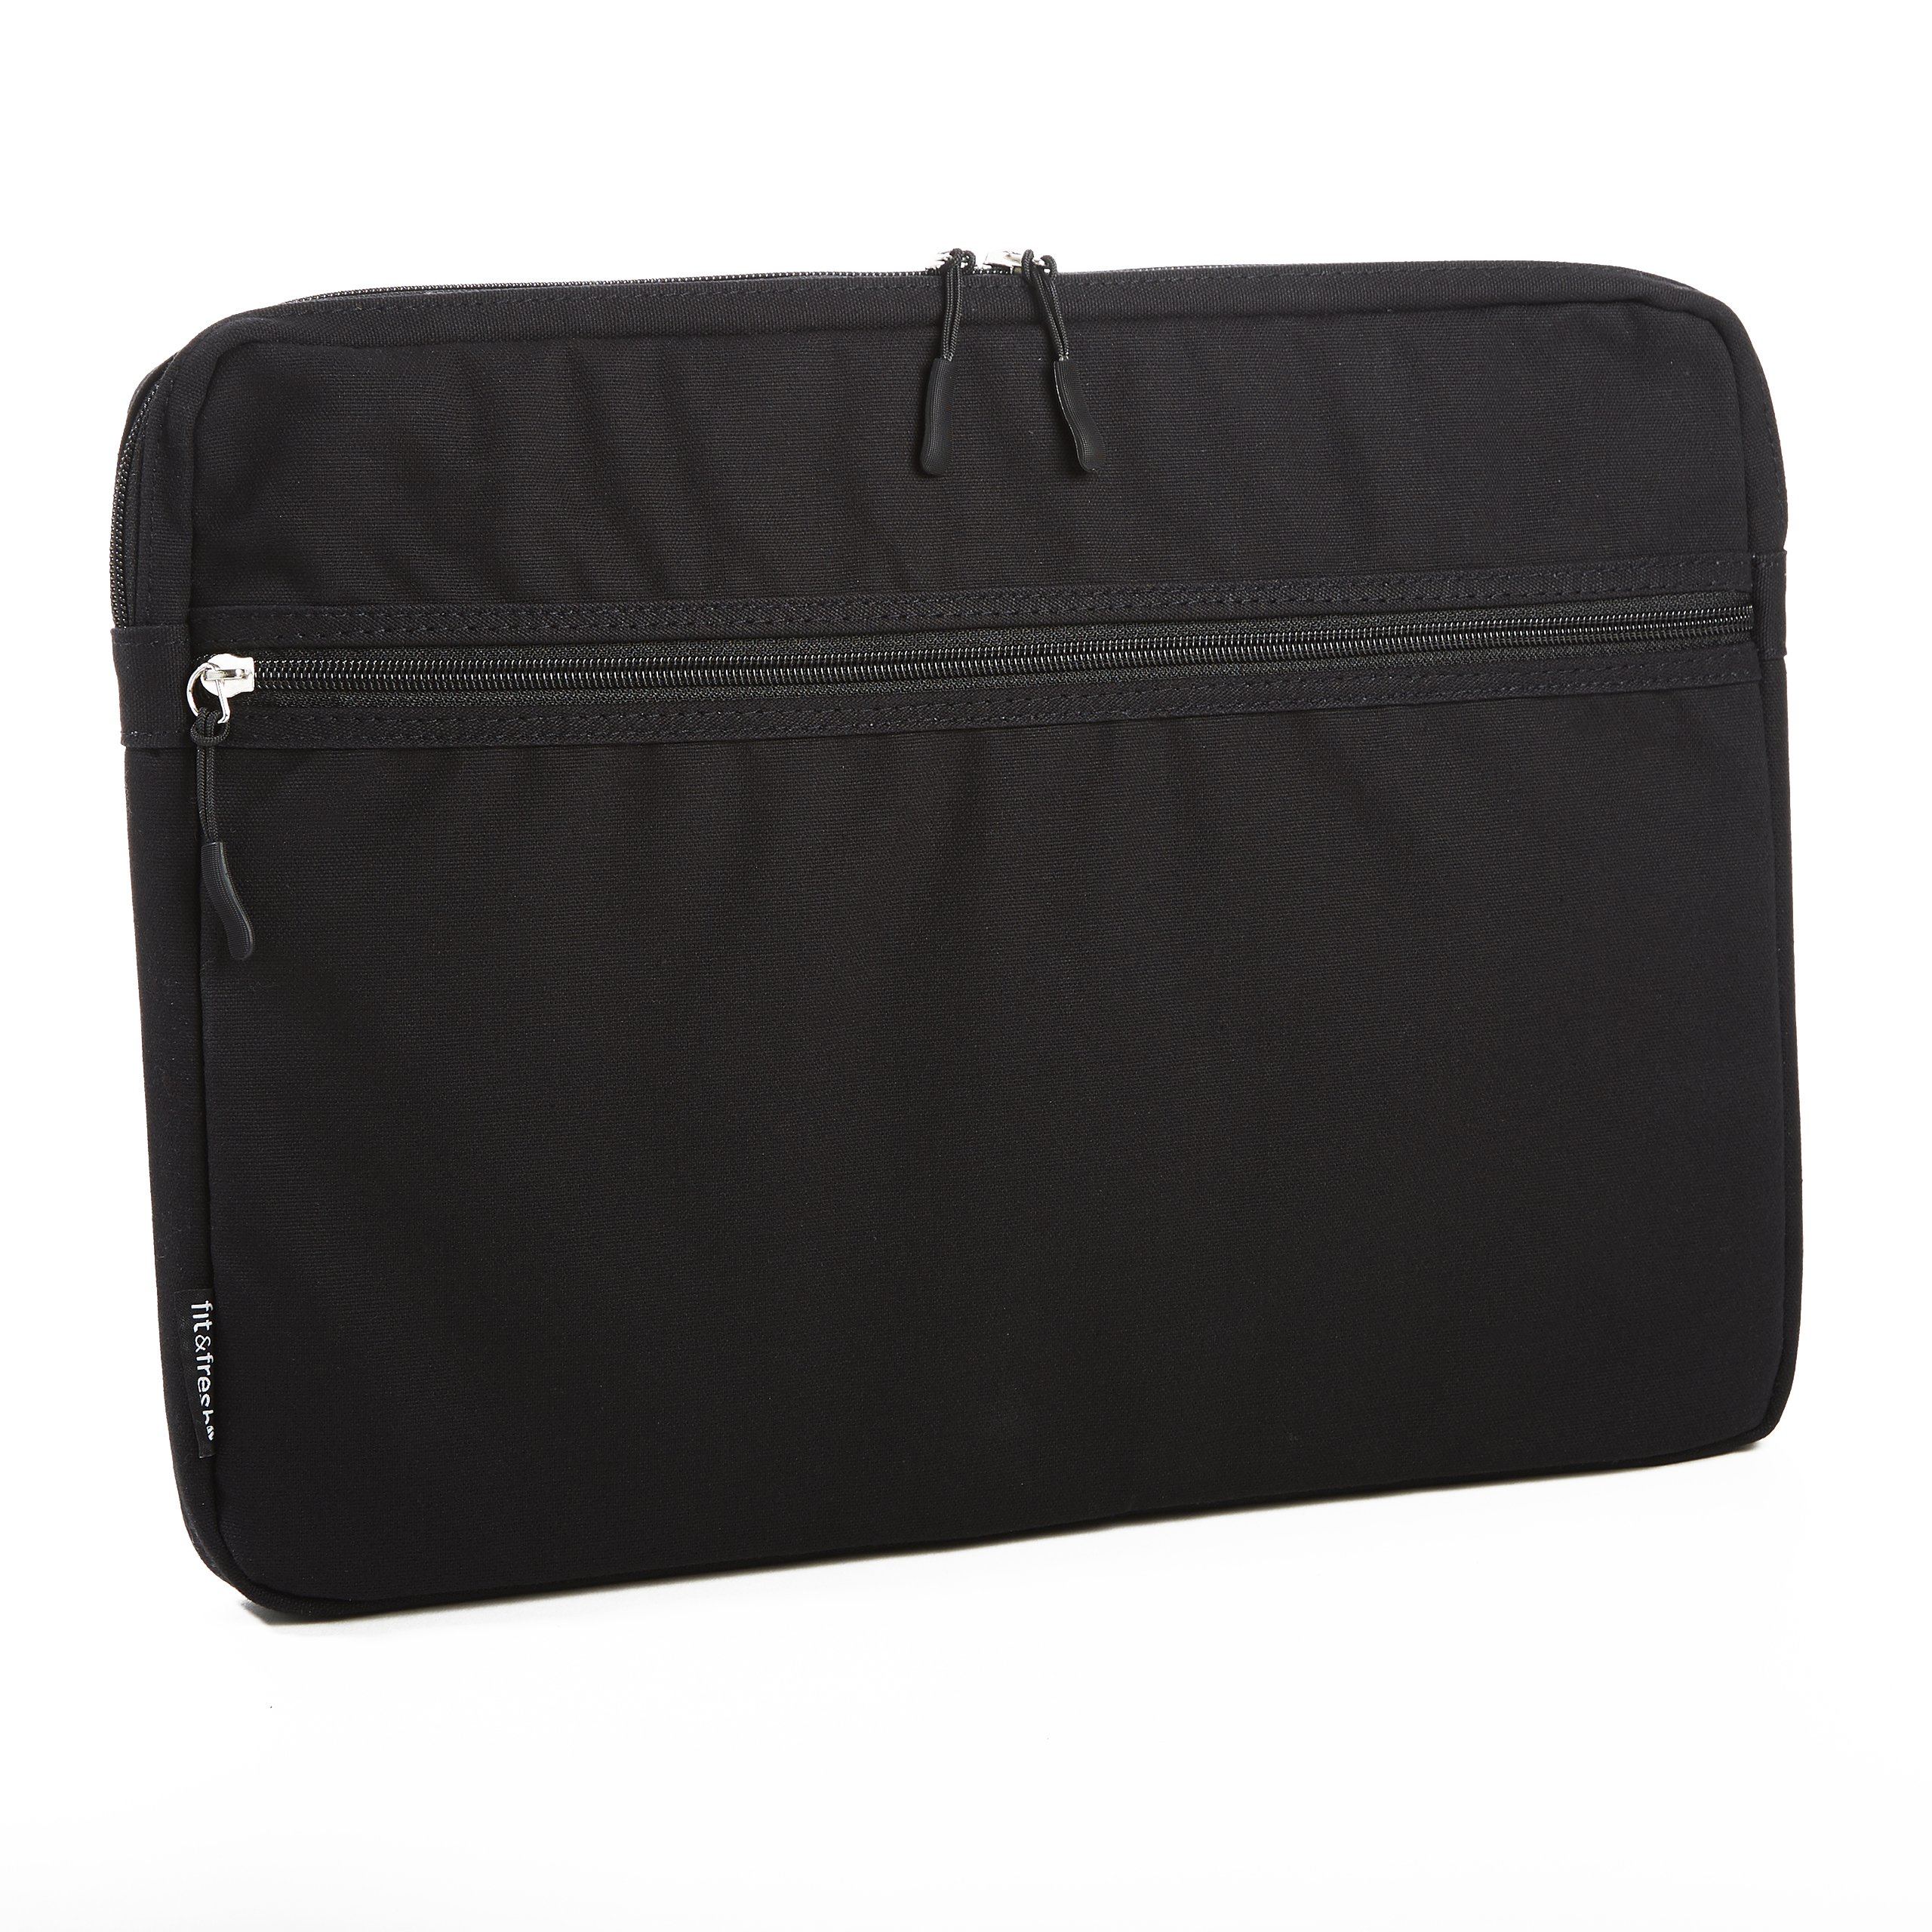 Fit & Fresh Protective Laptop Sleeve with Zippered Storage Pocket, Laptop Bag fits Apple/Microsoft/Acer/Samsung/Google/Lenovo with up to 15.6'' Displays, Black